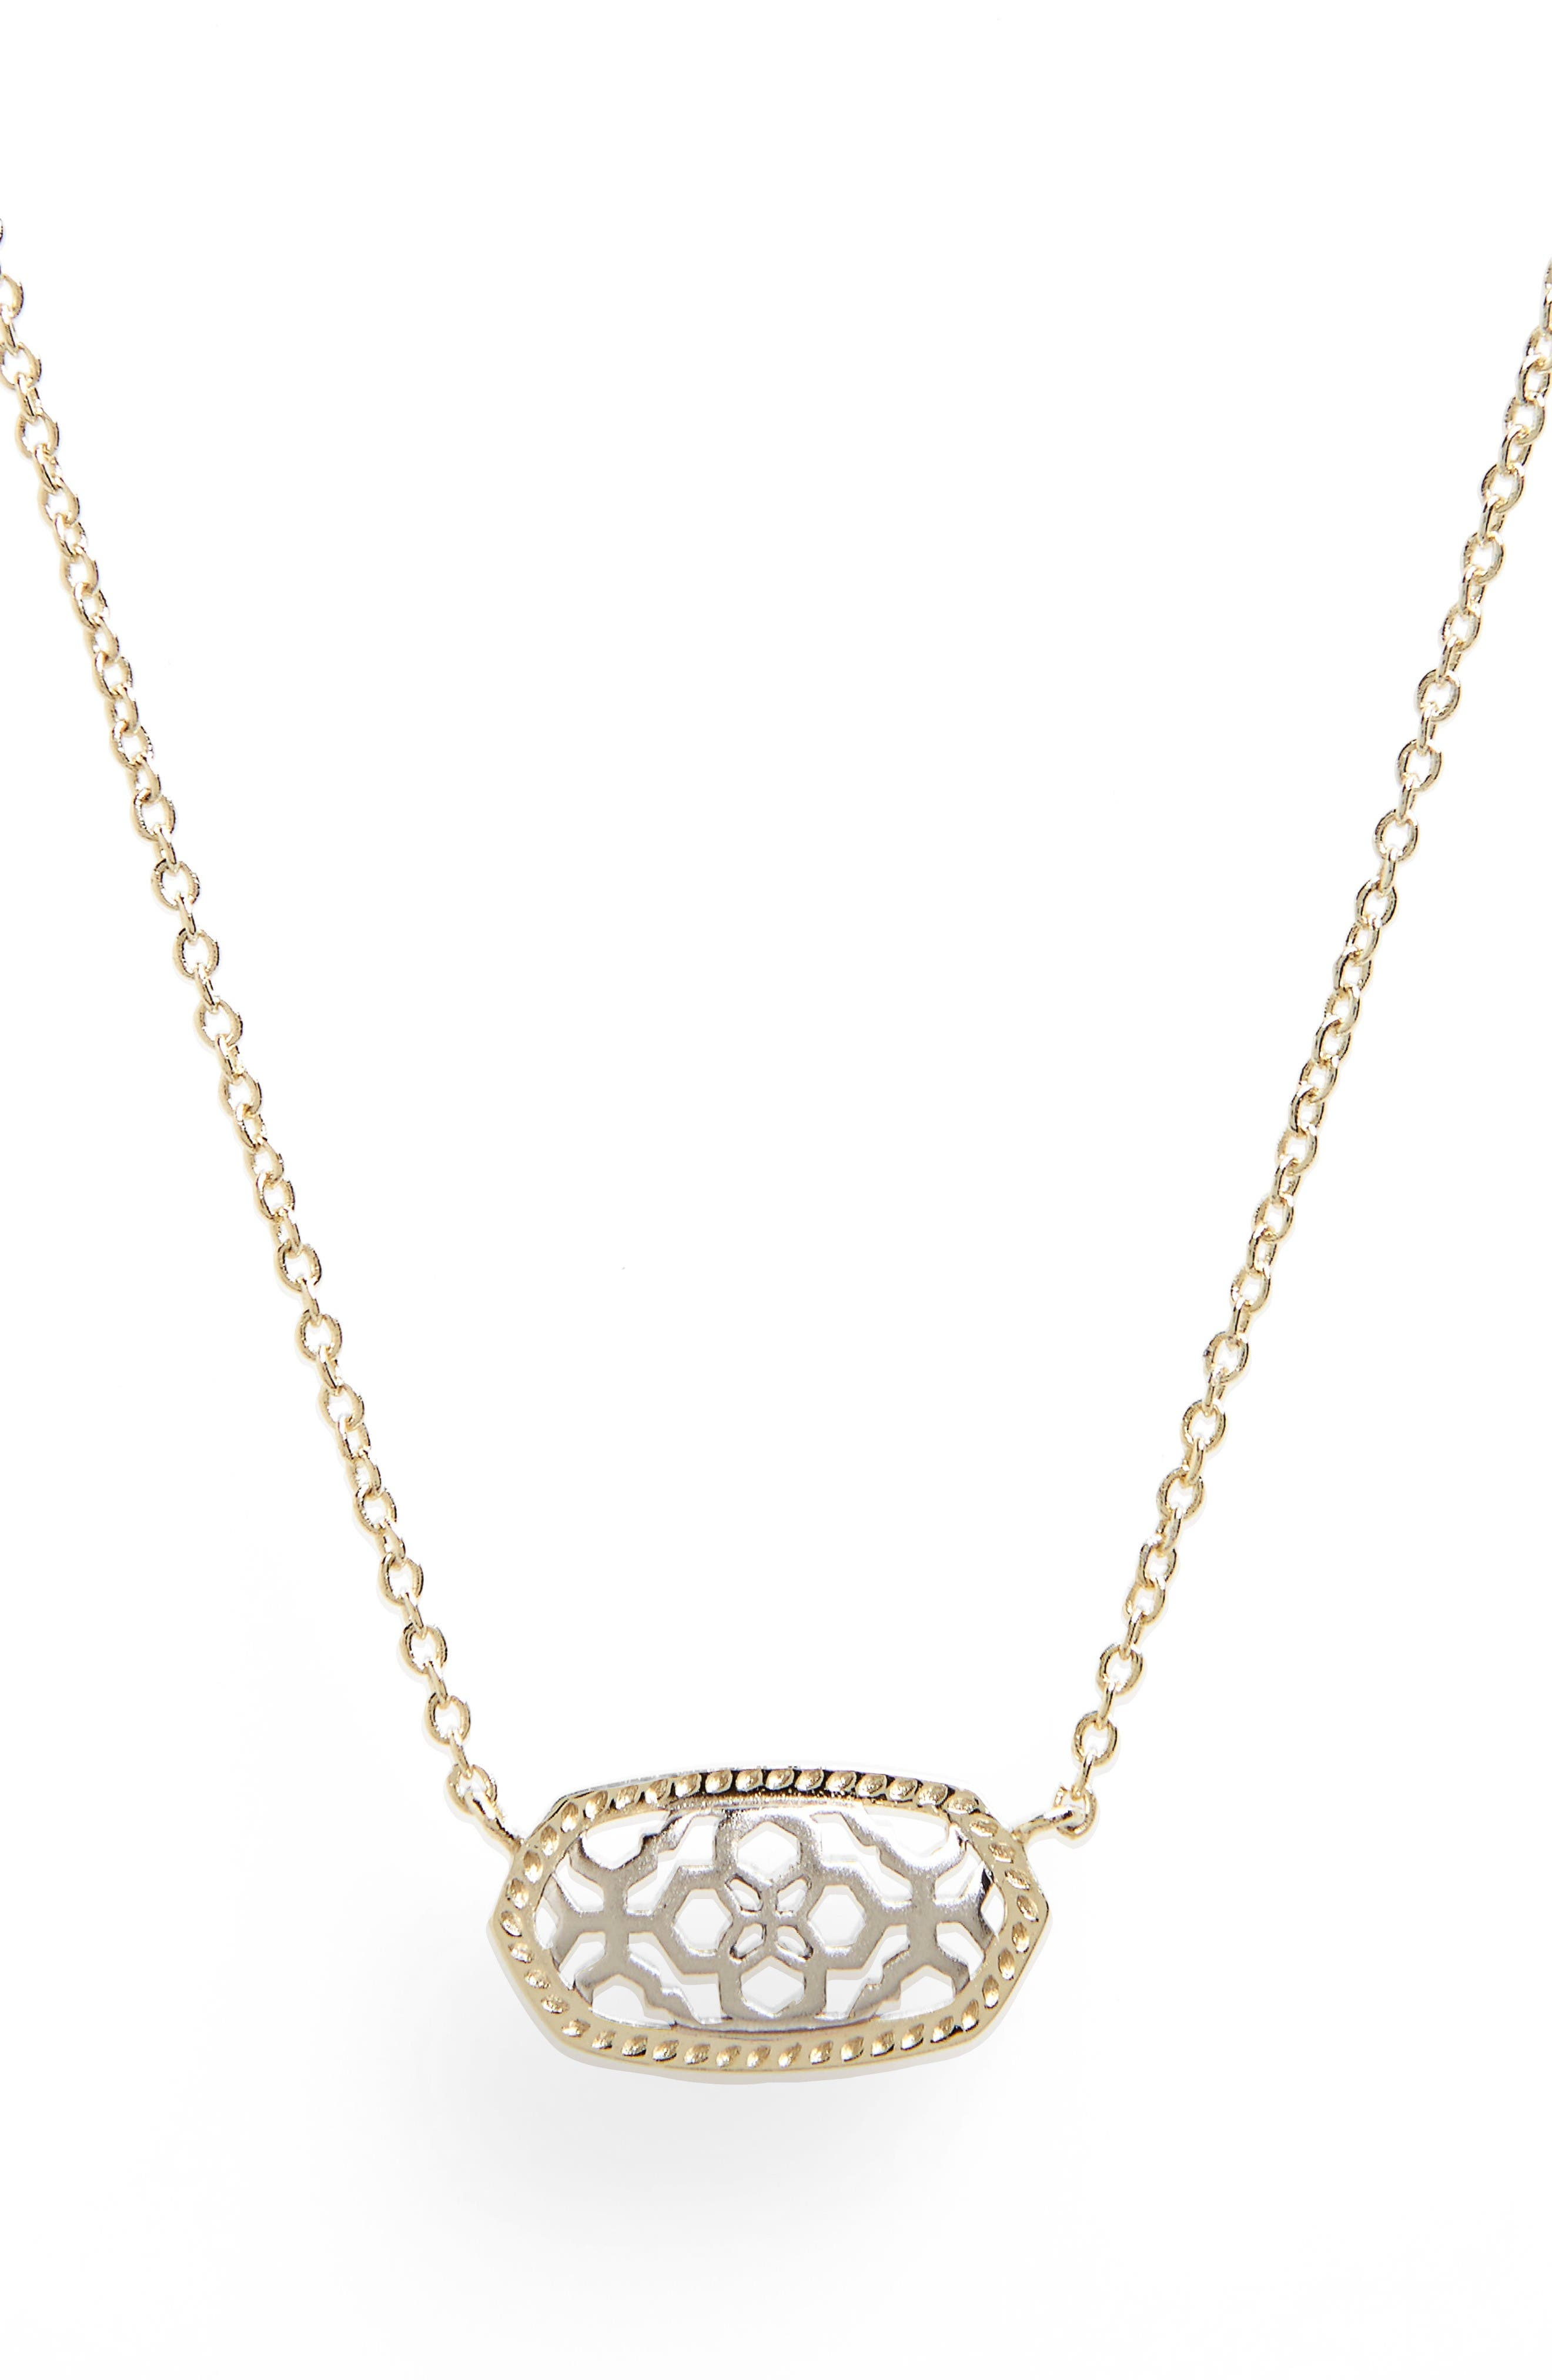 Main Image - Kendra Scott Elisa Openwork Pendant Necklace